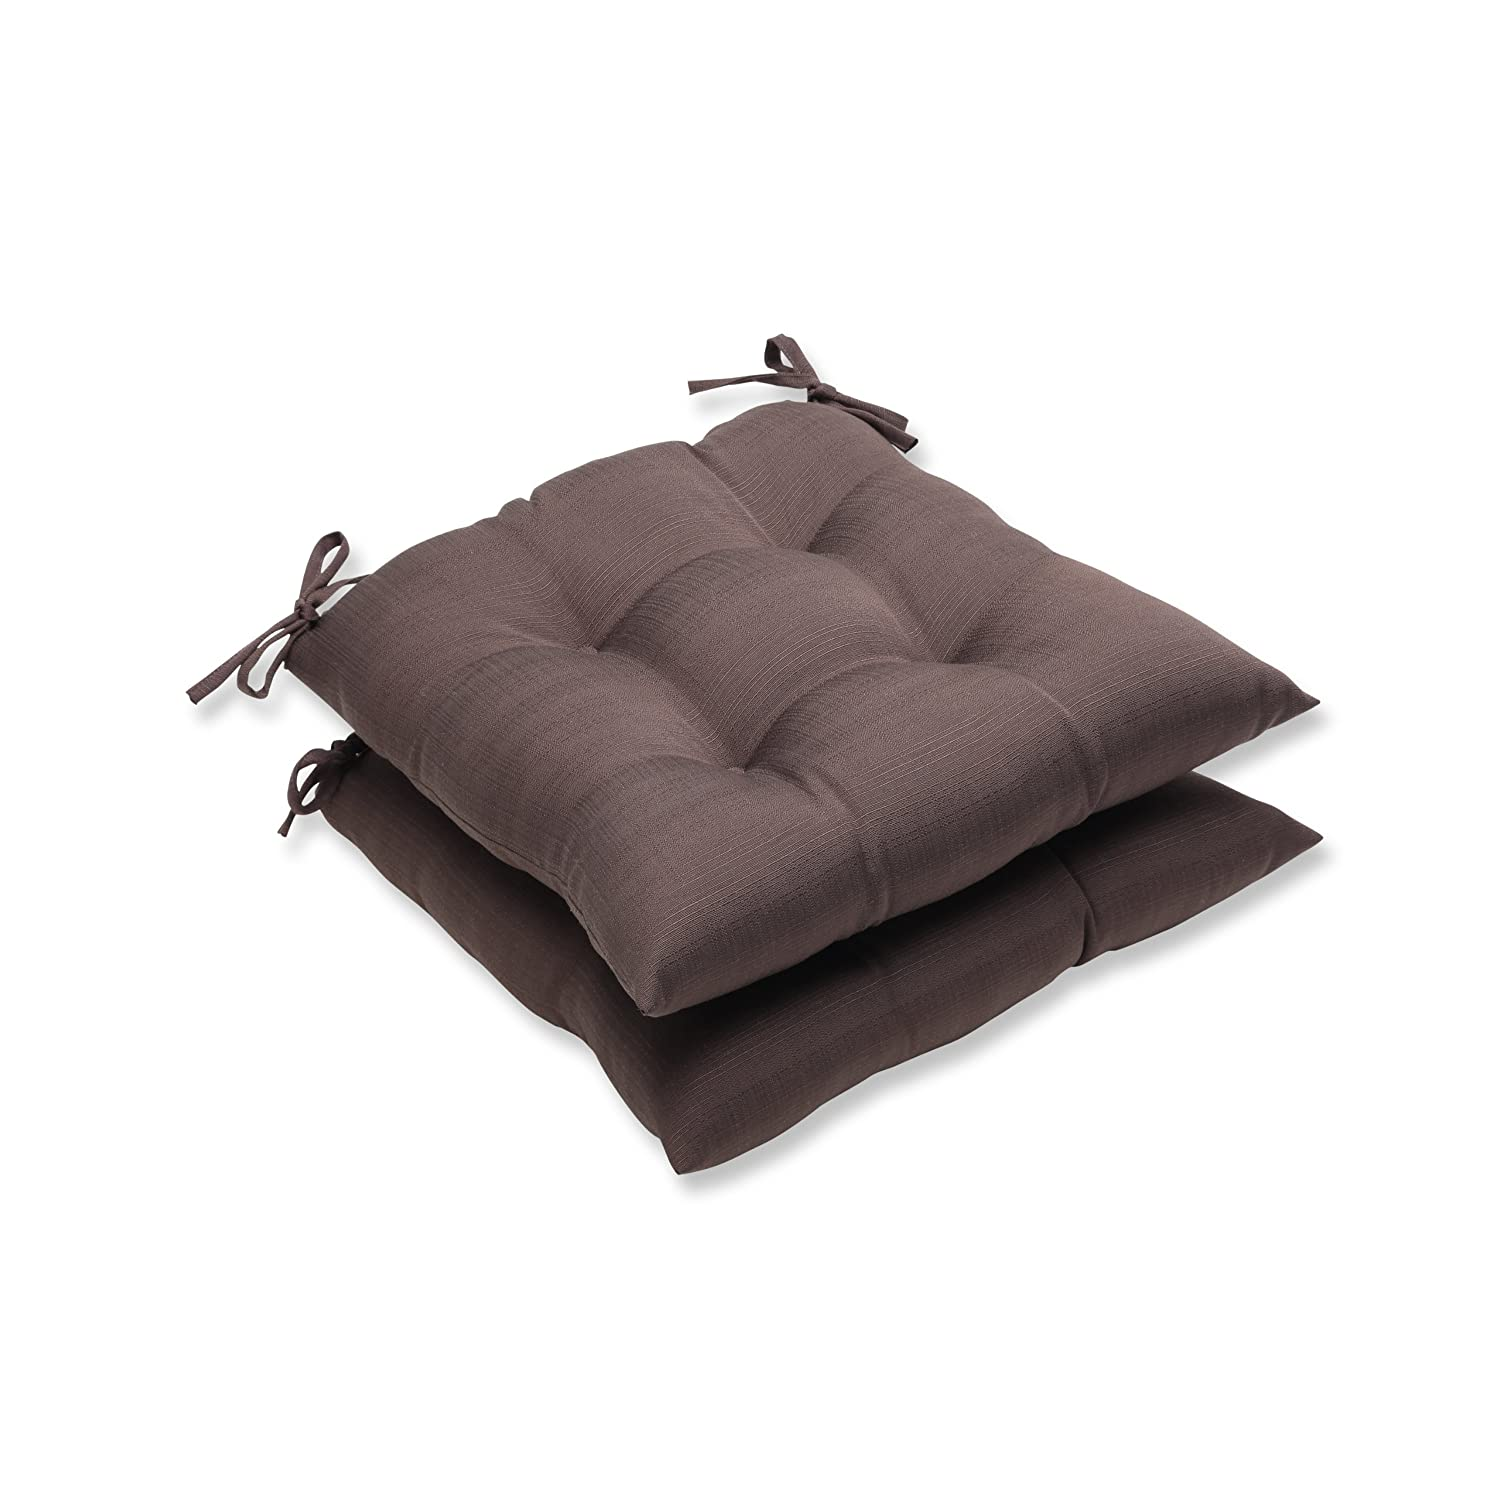 Pillow Perfect Outdoor Forsyth Chocolate Wrought Iron Seat Cushion, Set of 2